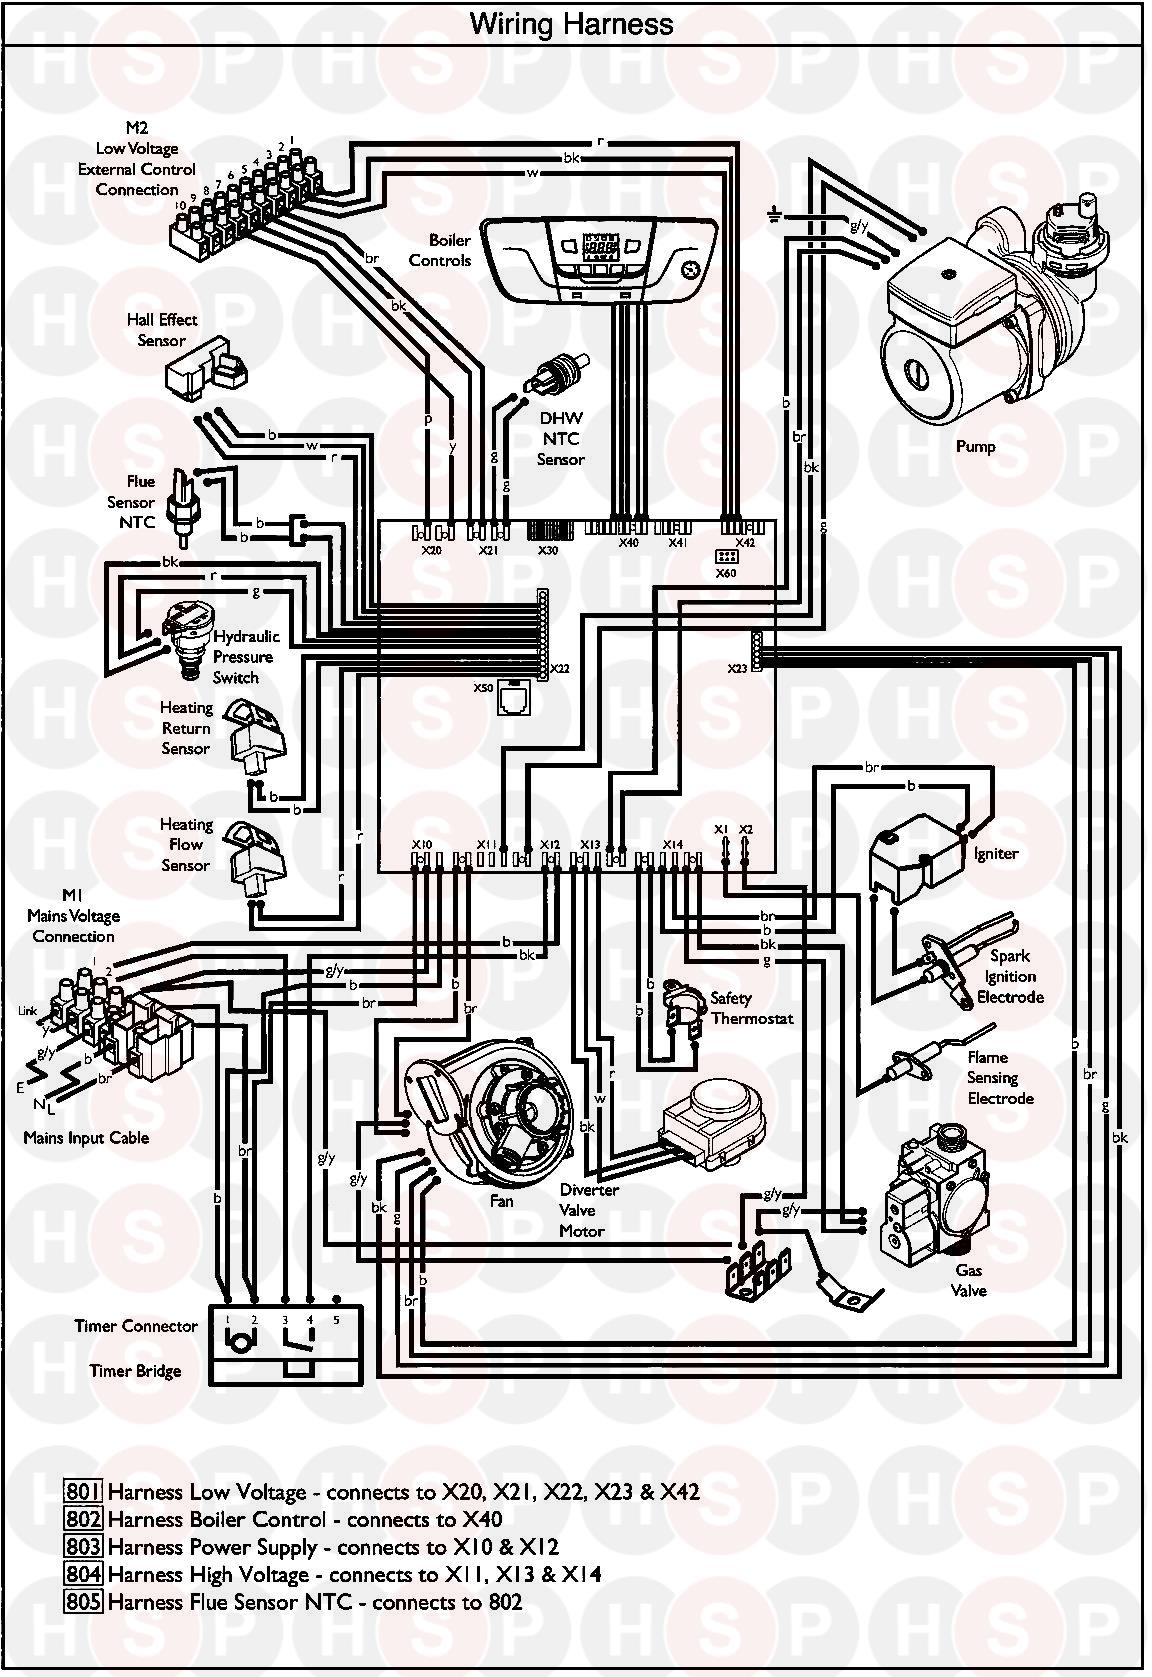 baxi ecoblue advance combi 33 boiler diagram wiring diagram click the diagram to open it on a new page